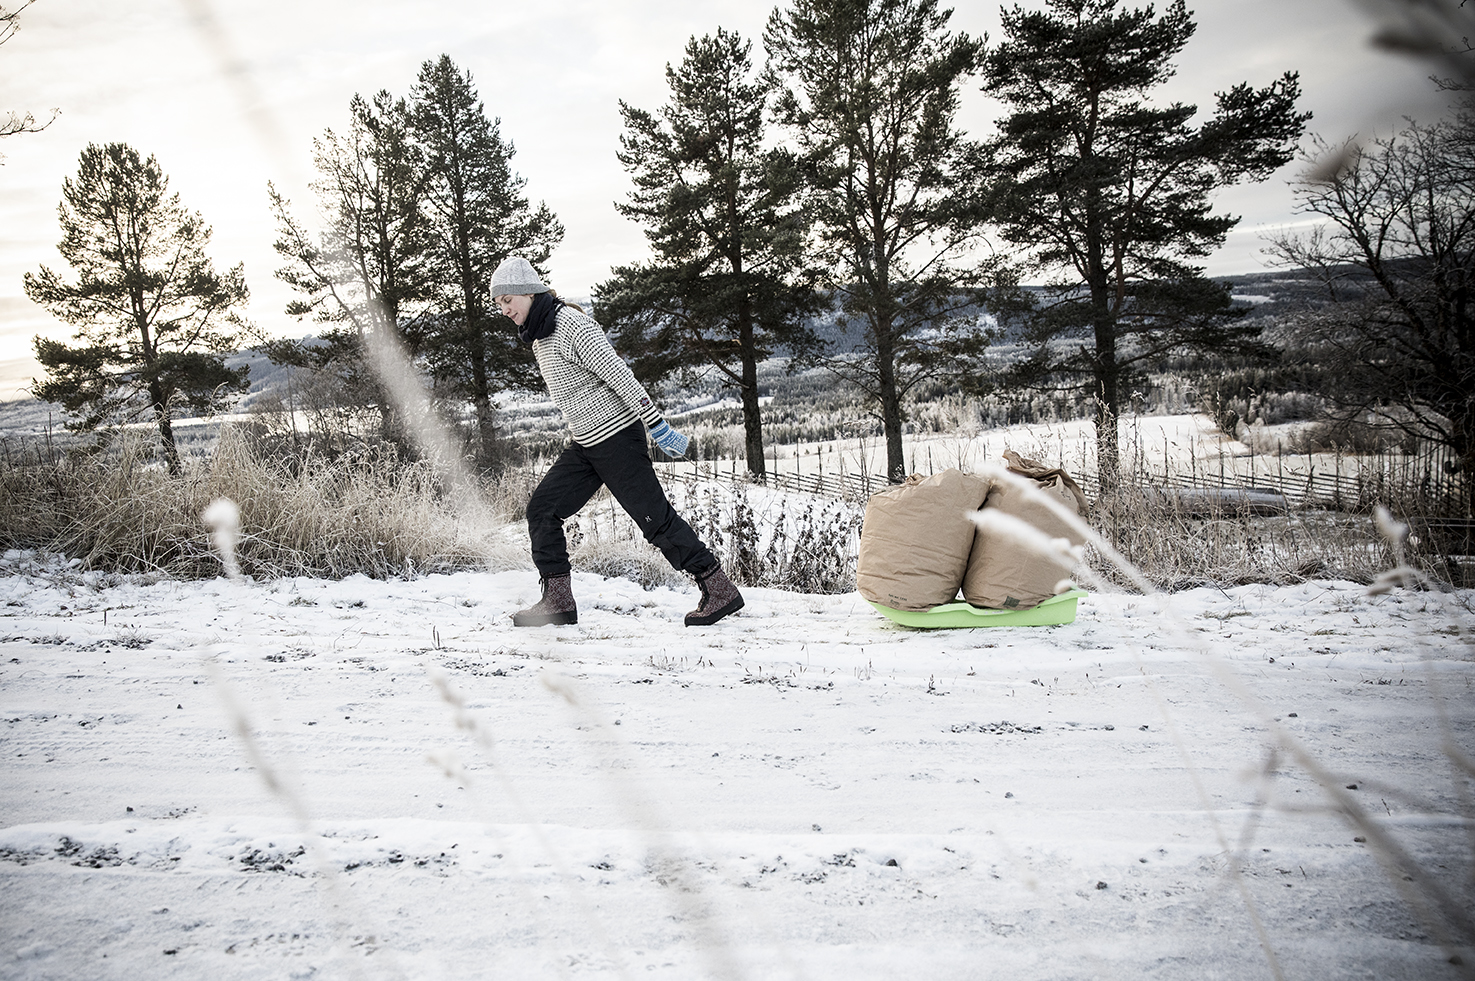 Founder and creative director of A New Sweden, Lisa Bergstrand transports wool through the snow